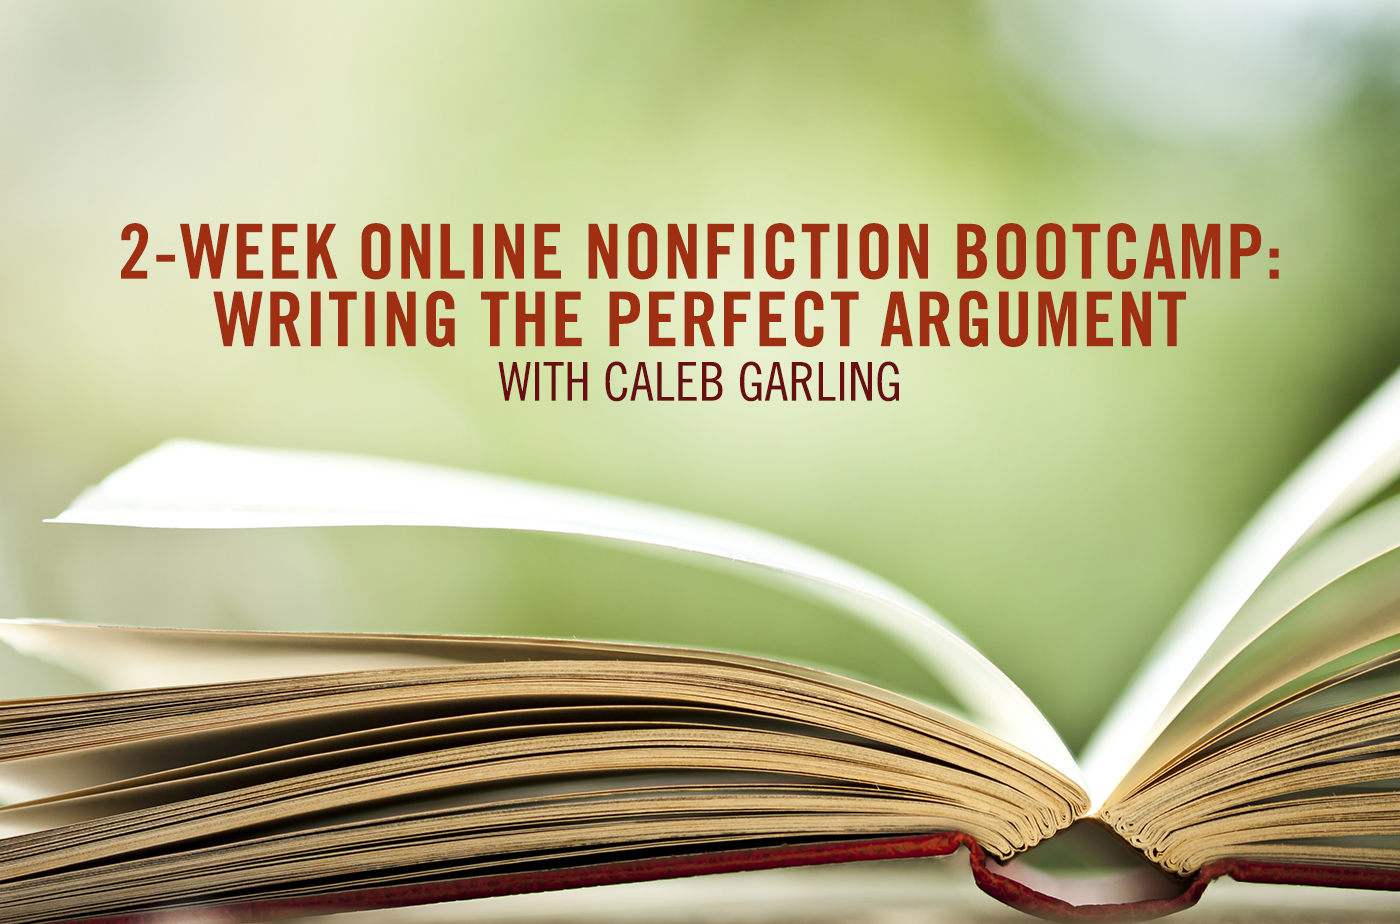 Catapult online classes: Caleb Garling, 2-Week Online Nonfiction Bootcamp: Writing the Perfect Argument , Nonfiction, Intensive